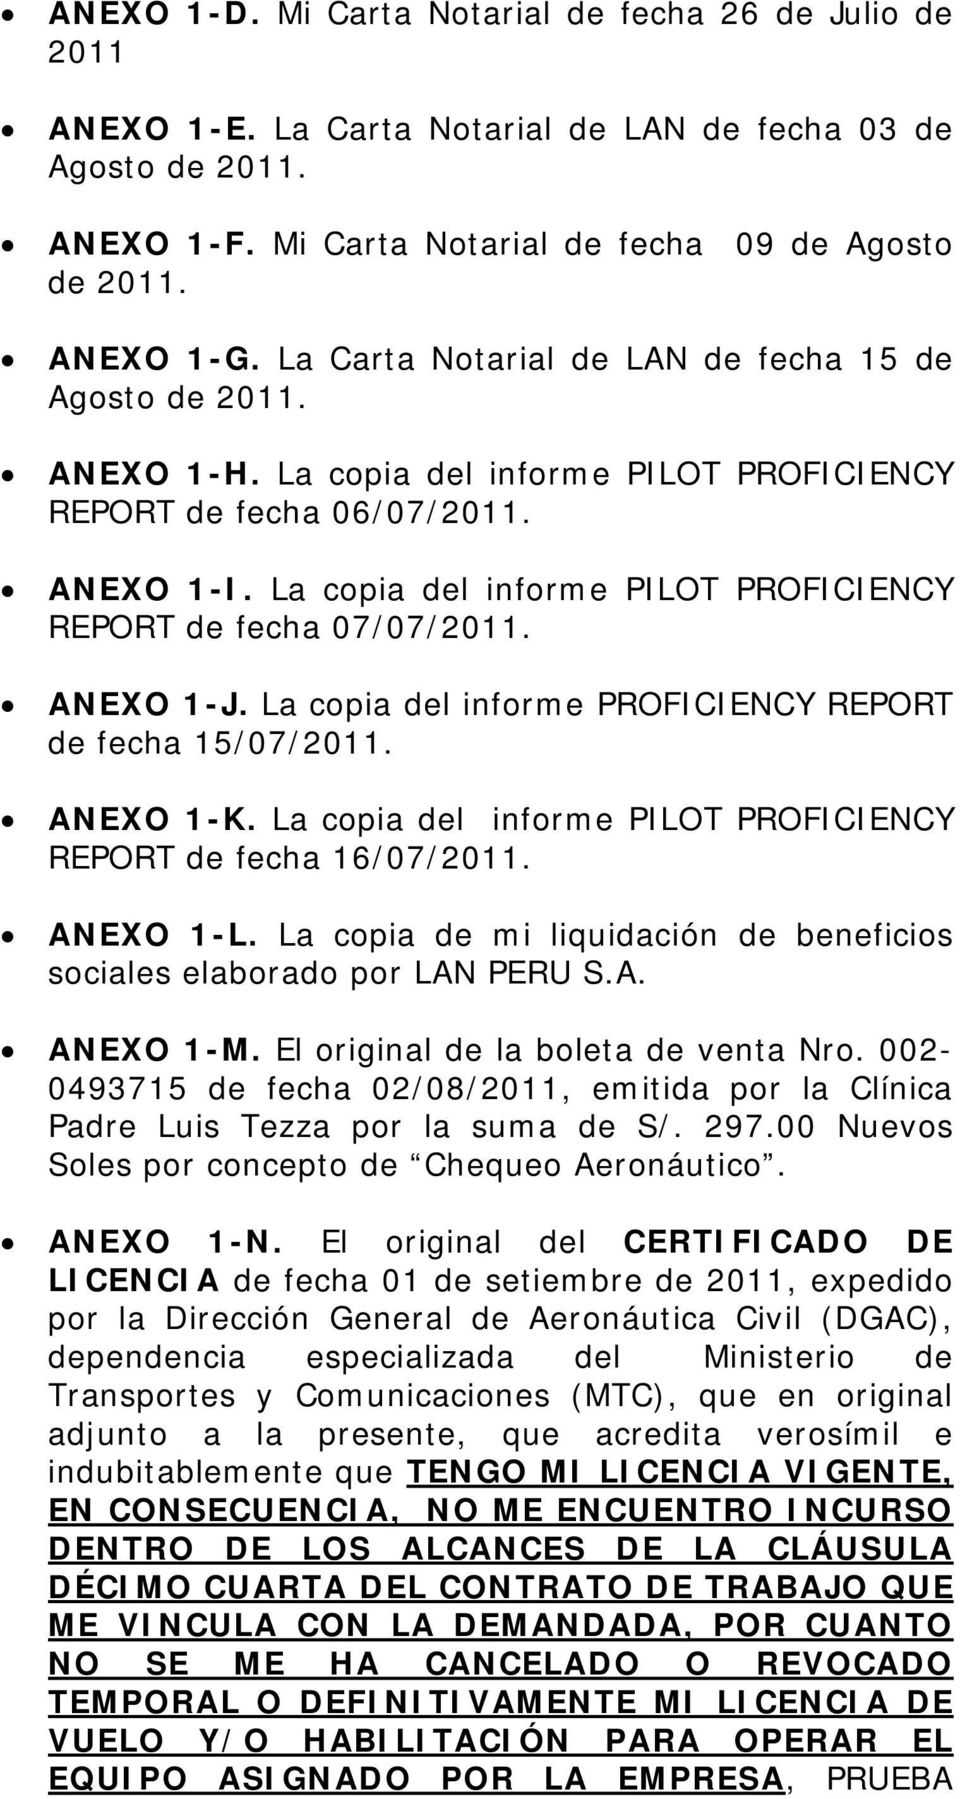 La copia del informe PILOT PROFICIENCY REPORT de fecha 07/07/2011. ANEXO 1-J. La copia del informe PROFICIENCY REPORT de fecha 15/07/2011. ANEXO 1-K.